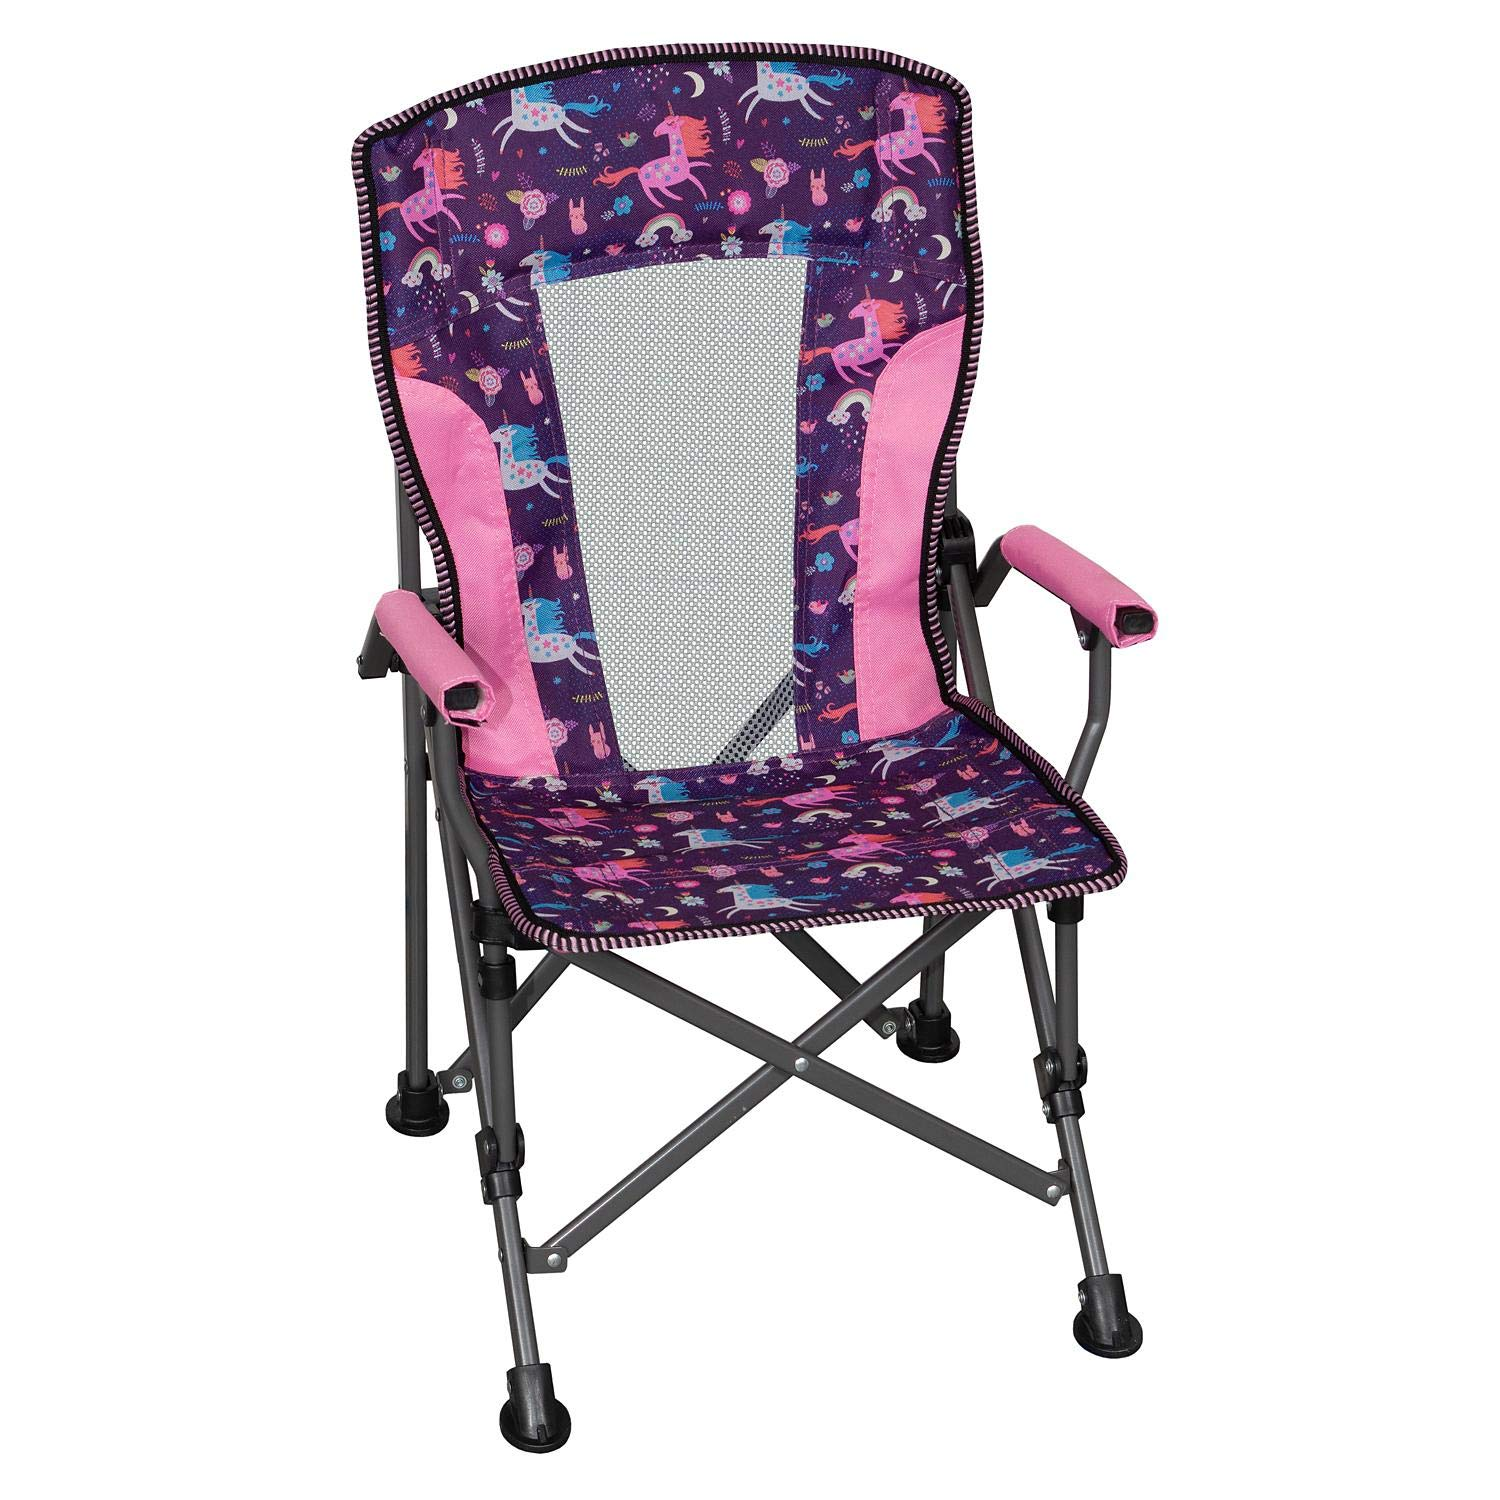 Member's Mark Kids' Folding Portable Light Weight Arm Chair with Matching Storage Bag & Carrying Strap (Unicorn) by Members Mark